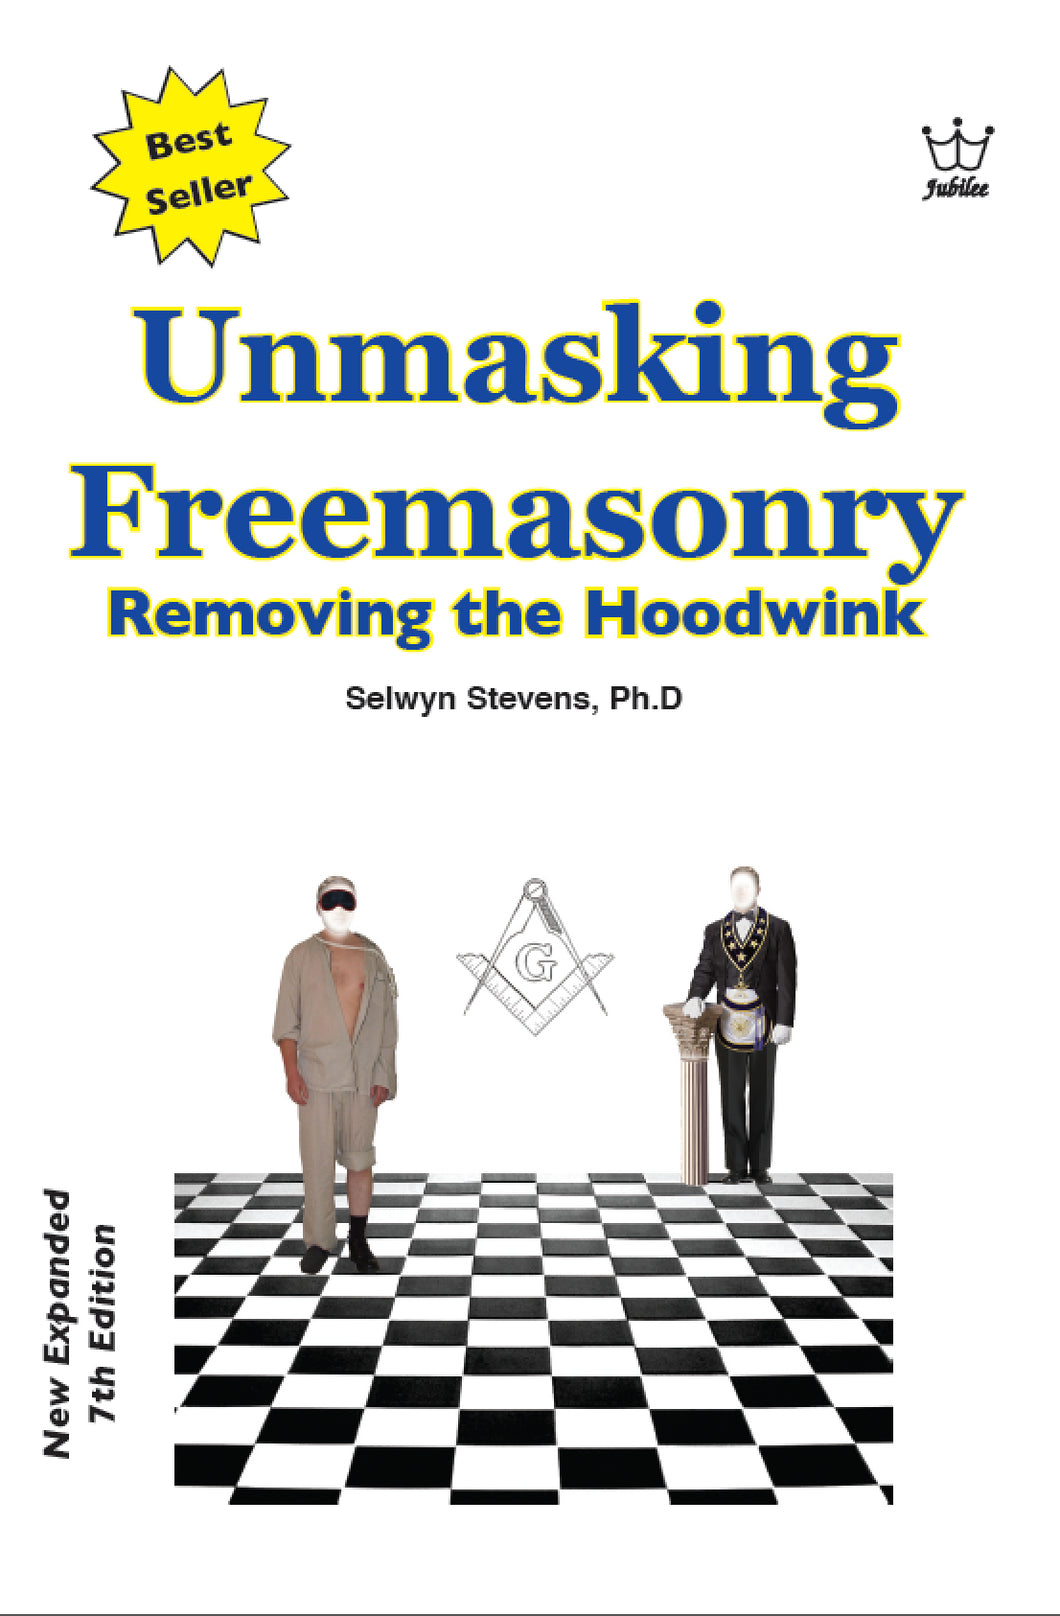 Unmasking Freemasonry - Removing The Hoodwink DVD